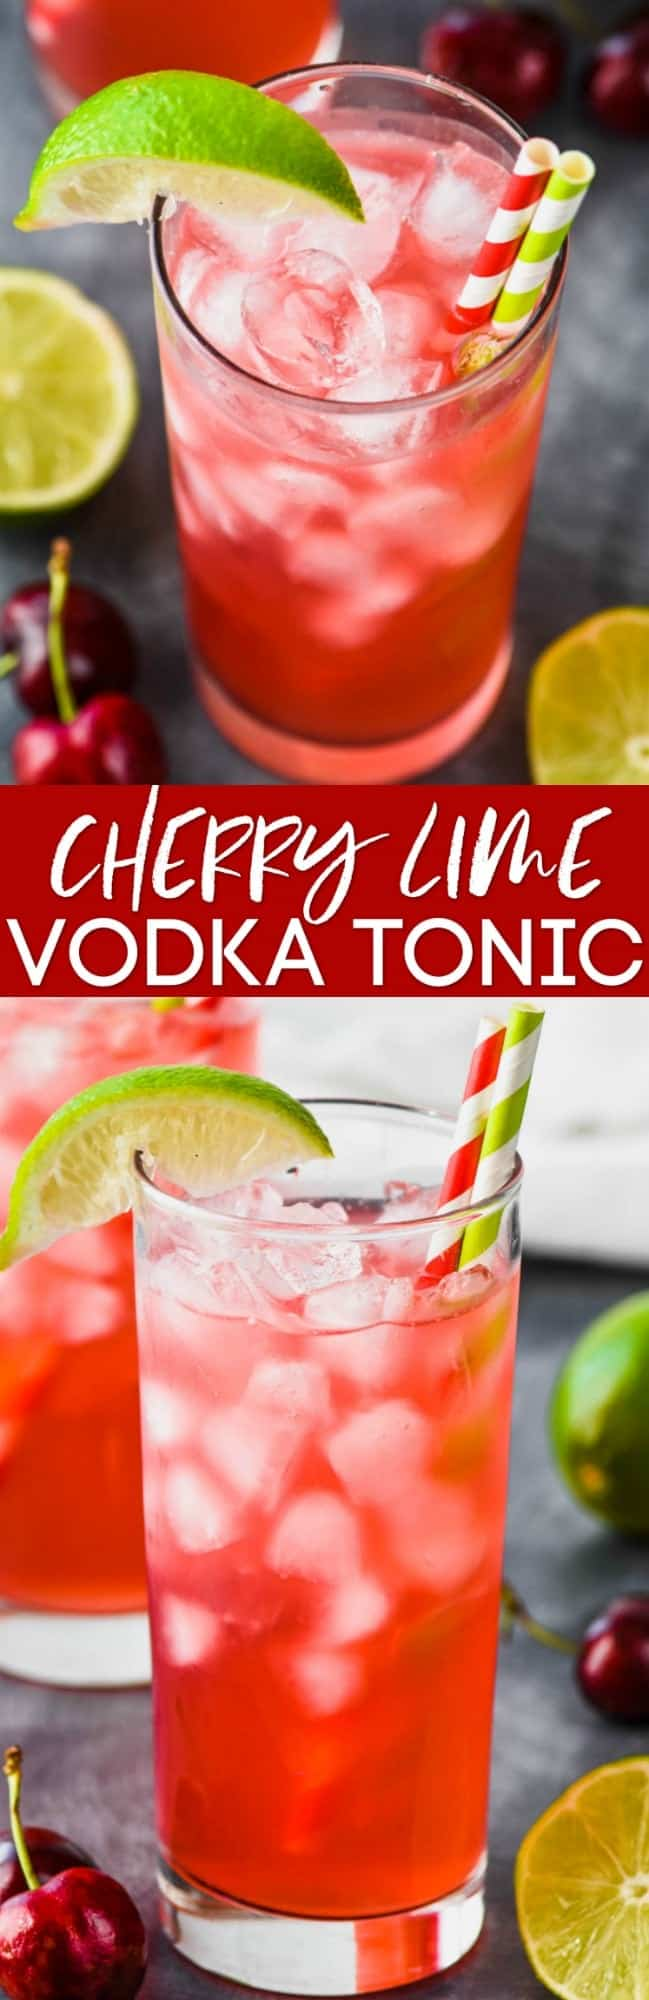 collage of photos of cherry lime vodka tonic